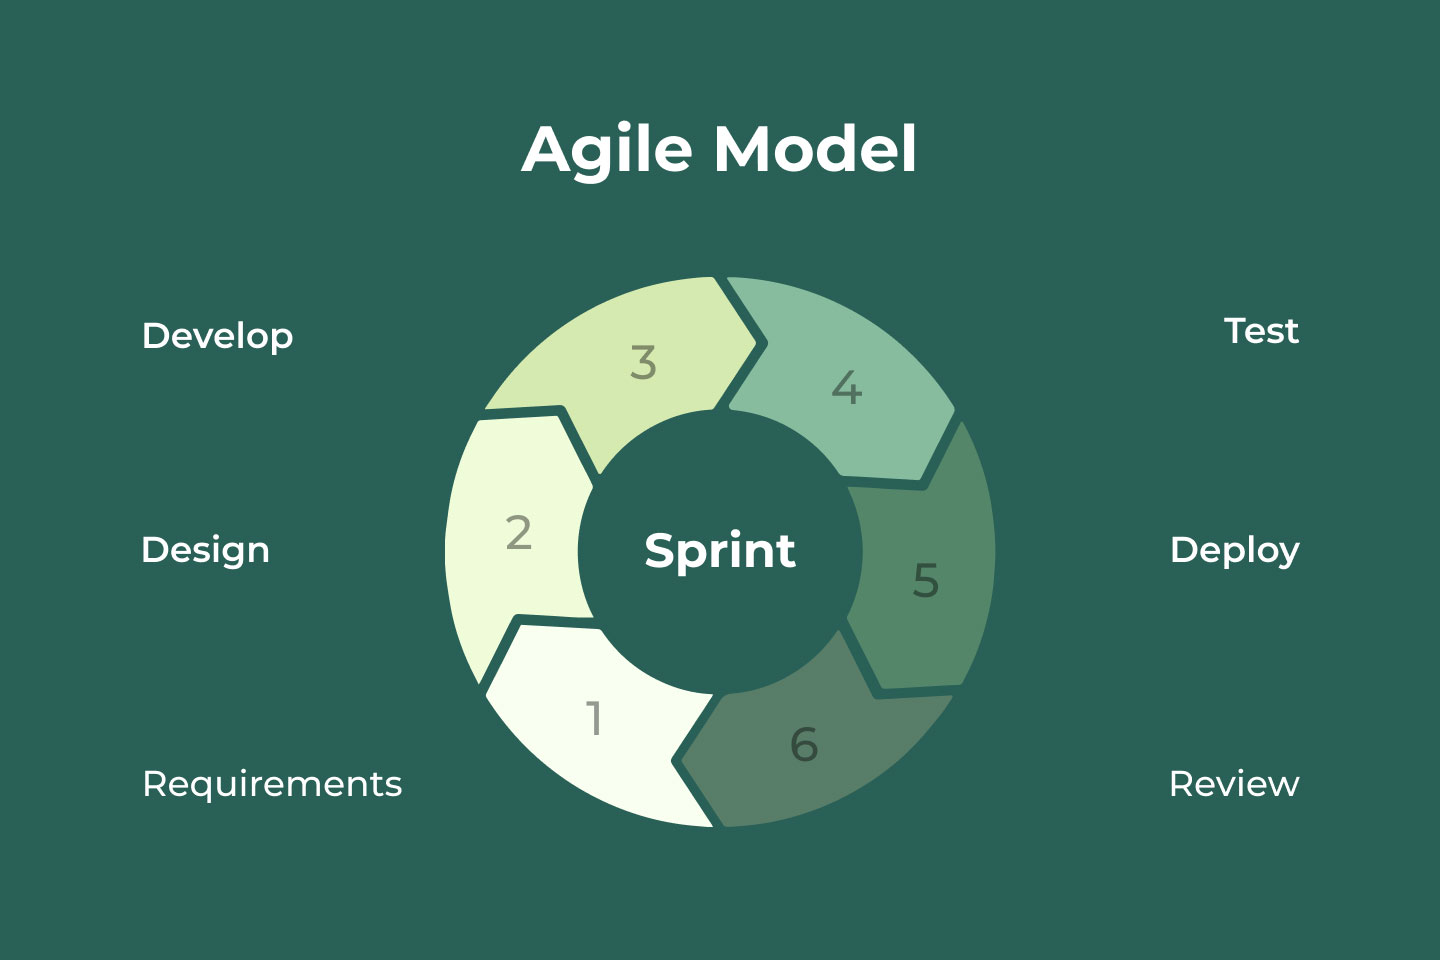 Agile model stages